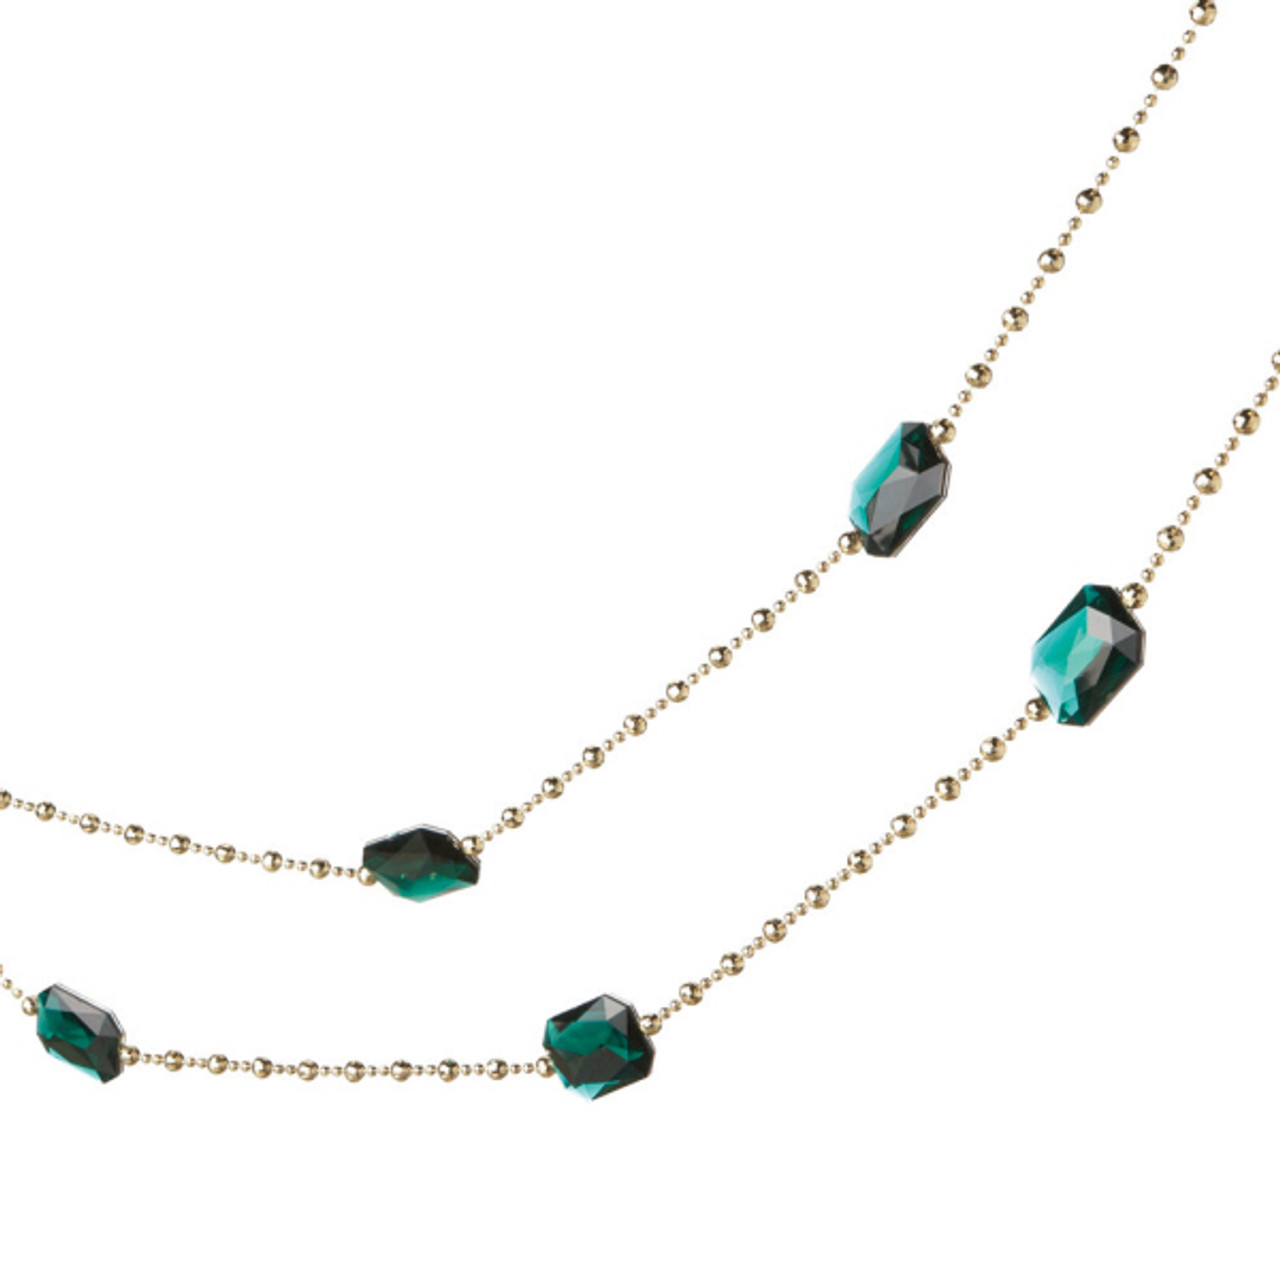 6' Teal Green & Silver Jewel Beaded Artificial Christmas